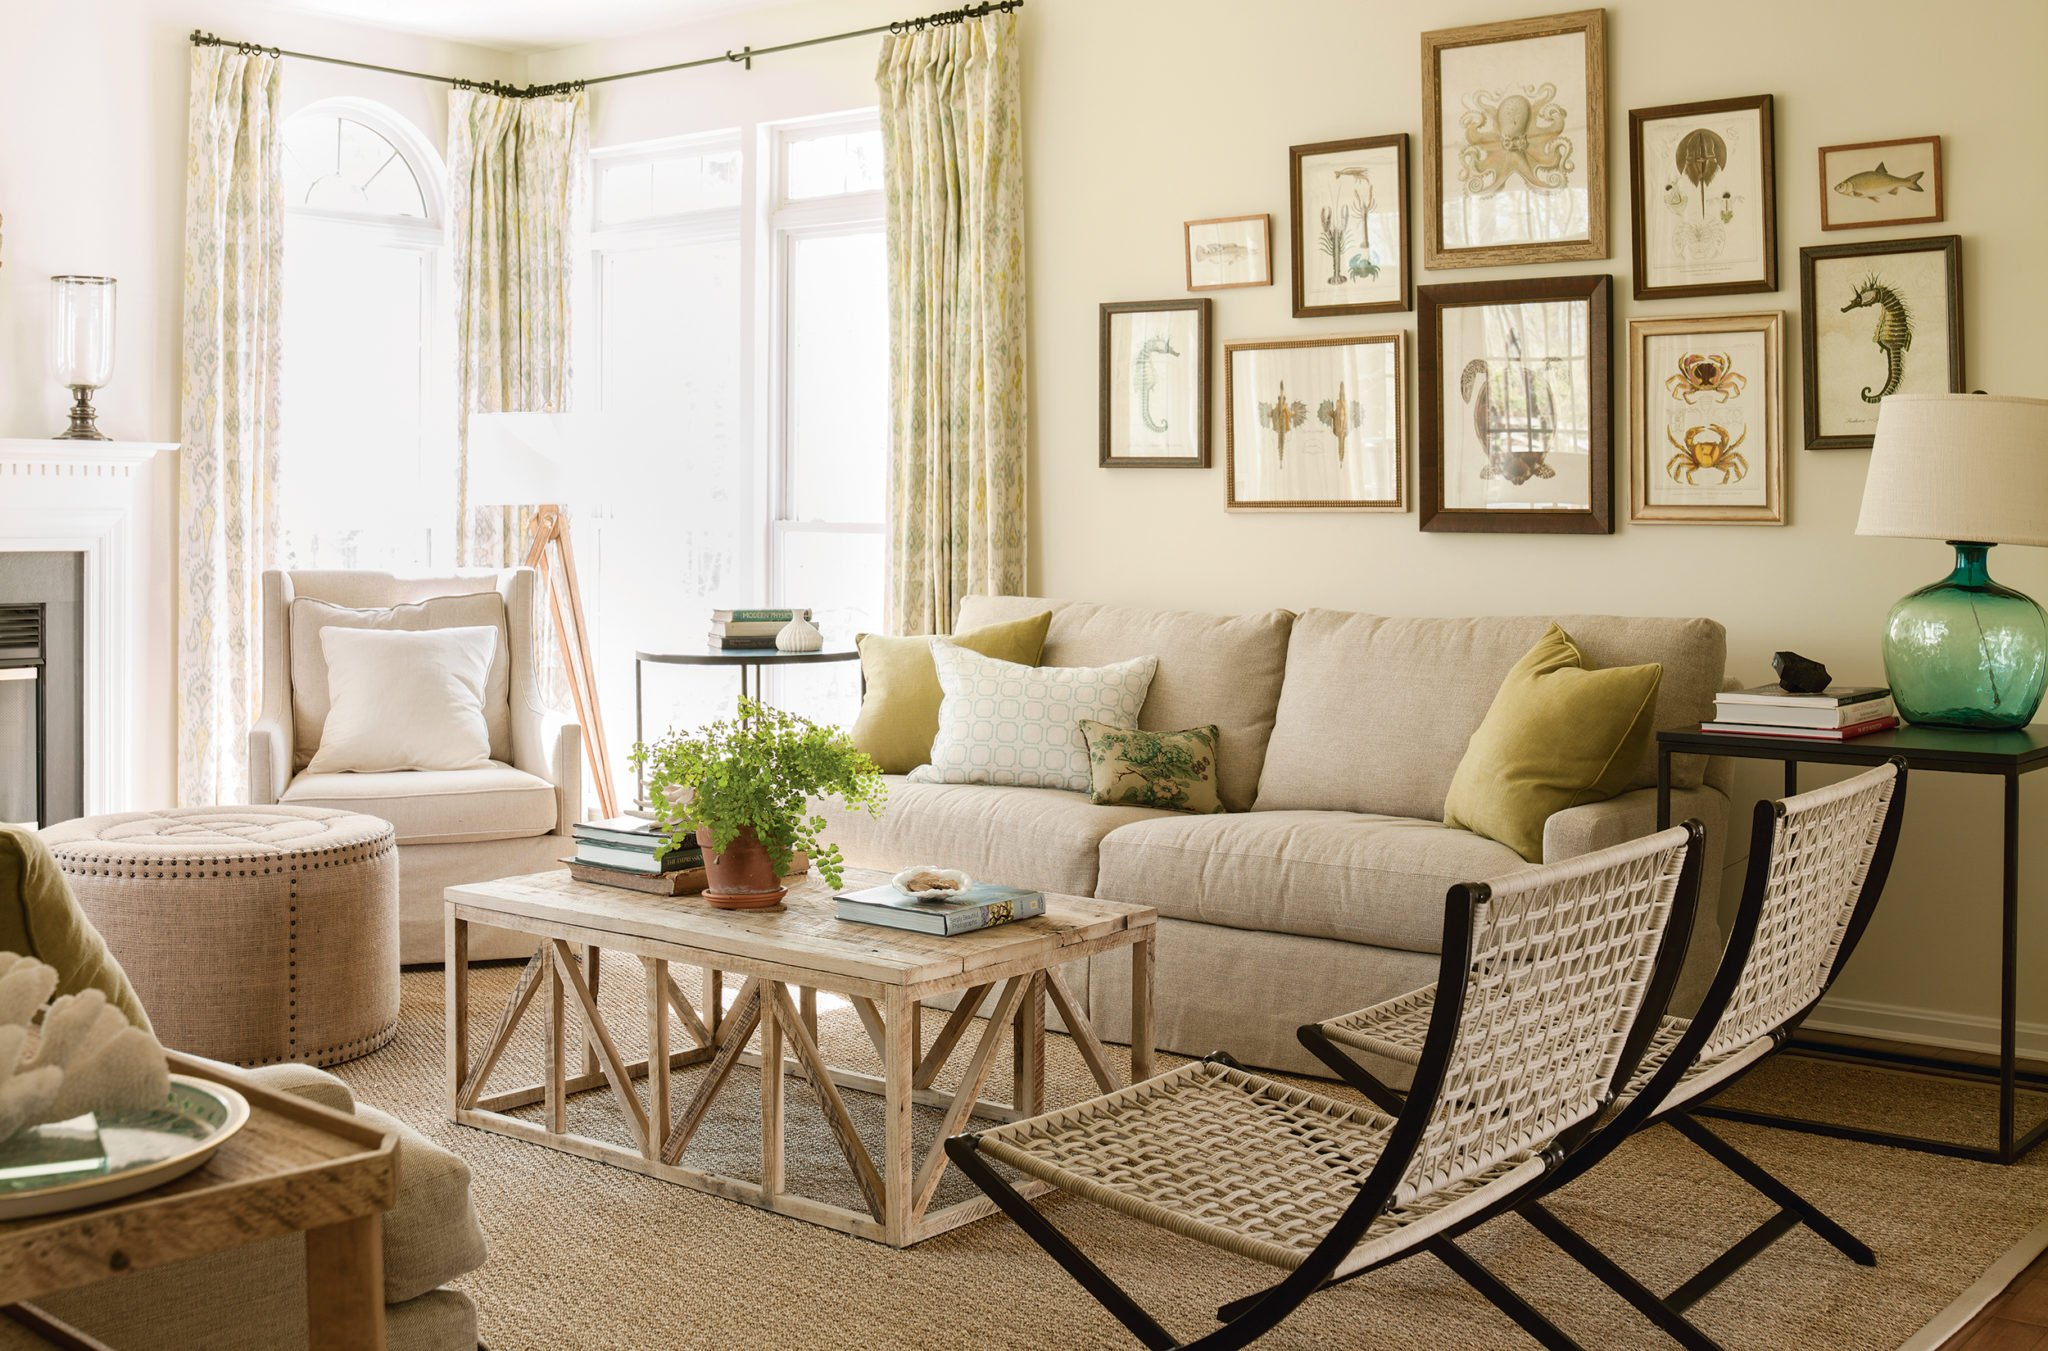 10 Easy Ways to Make Your Home More Peaceful